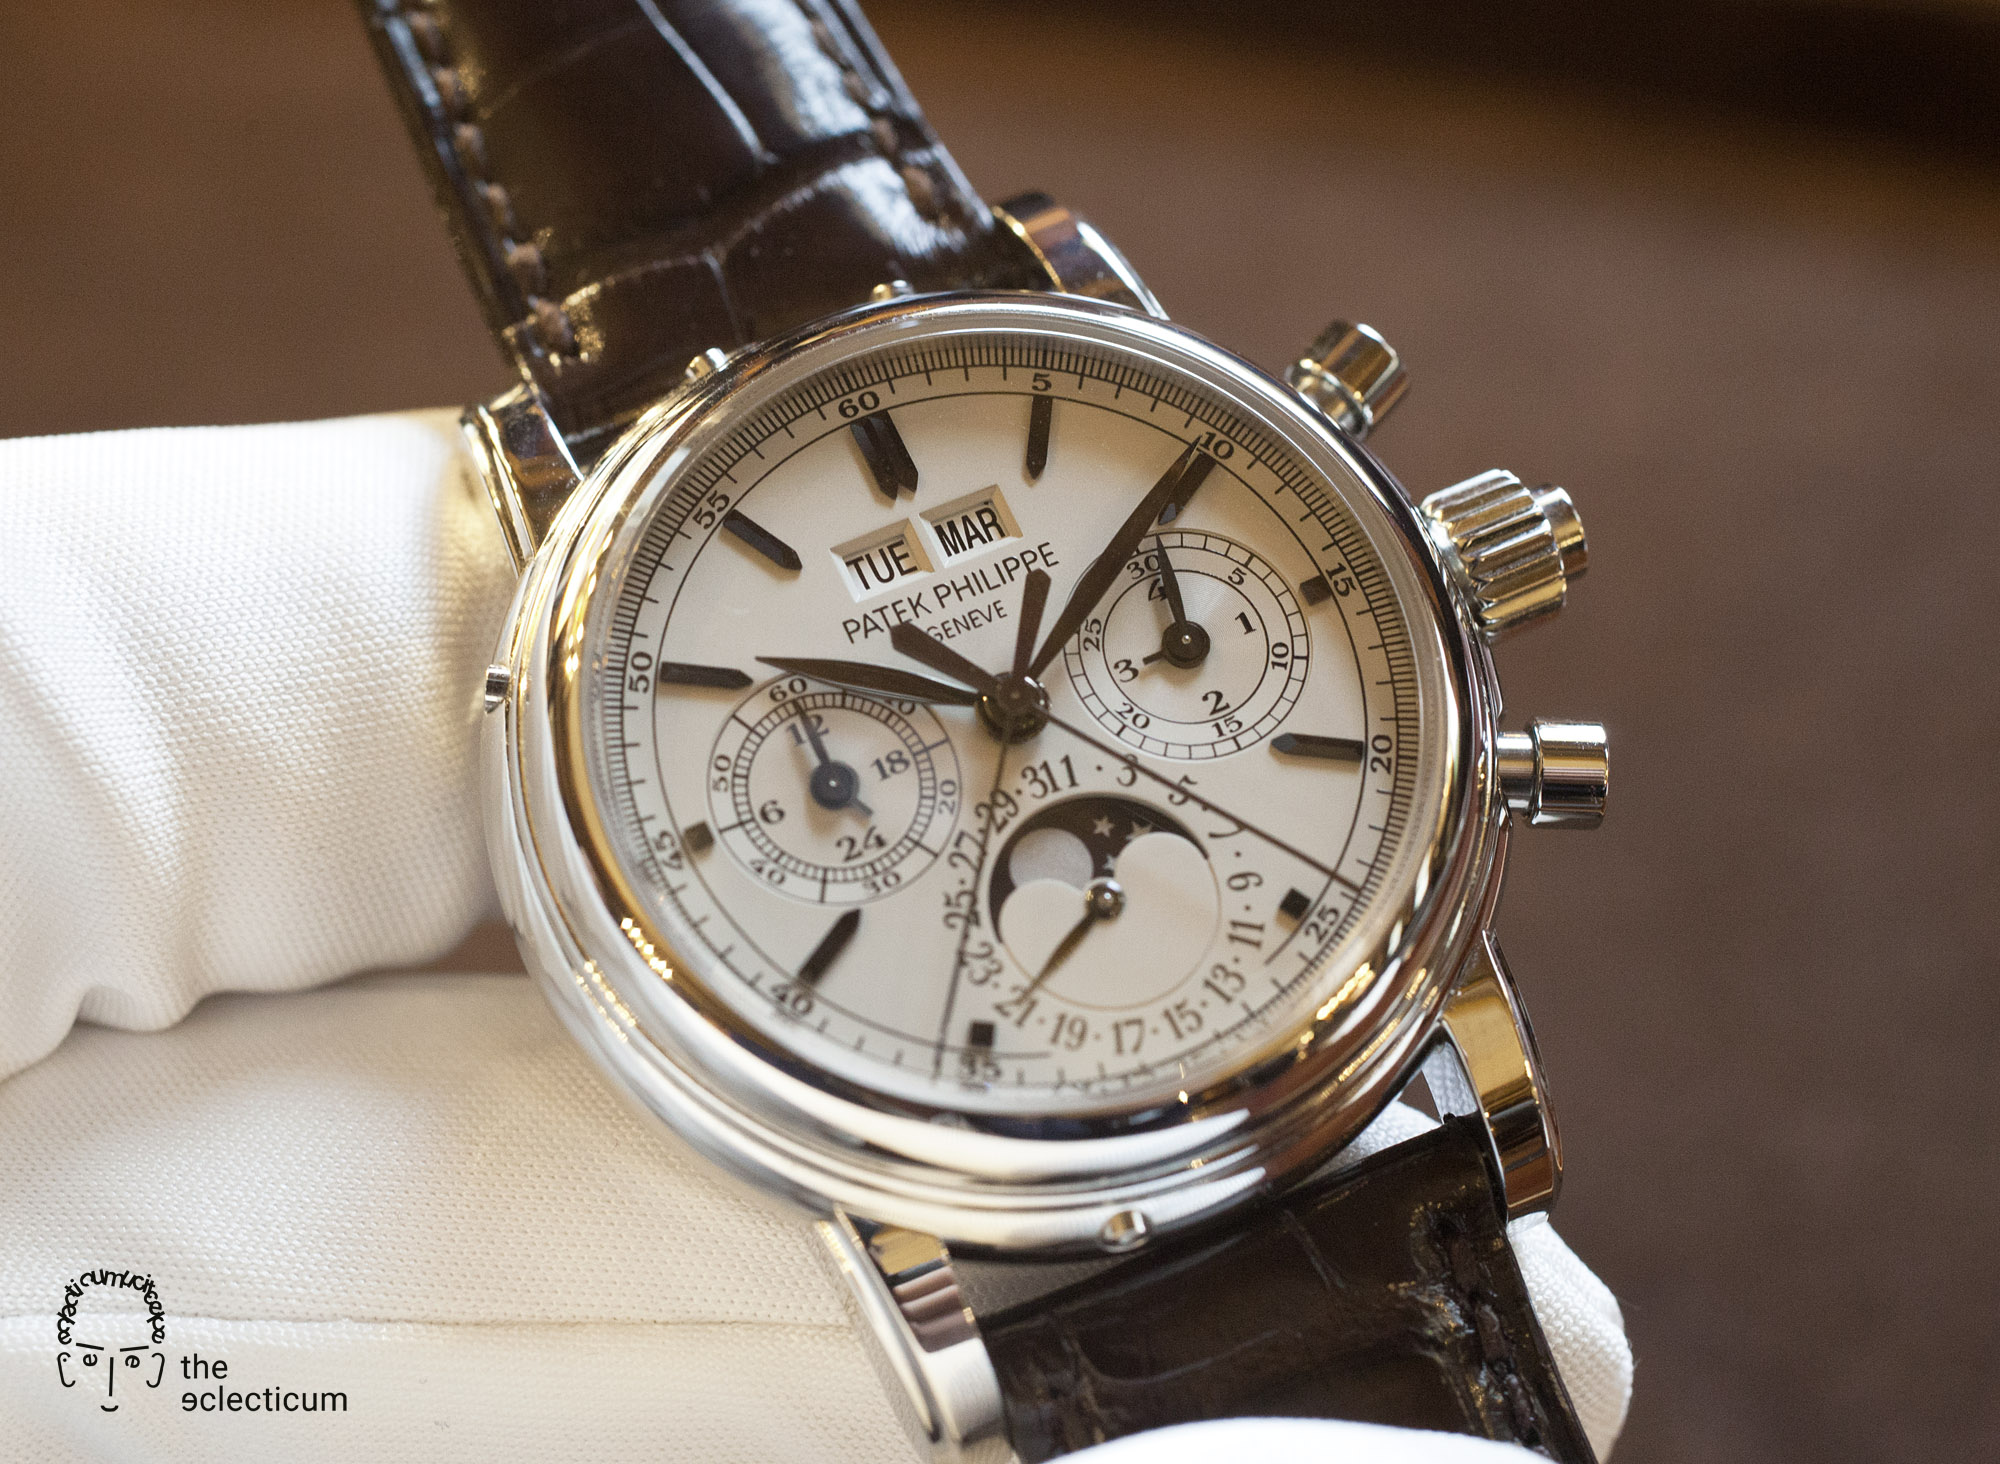 Patek Philippe Ref. 5004A Perpetual Calendar Rattrapante Split-Second Chronograph stainless steel CHR 27-70